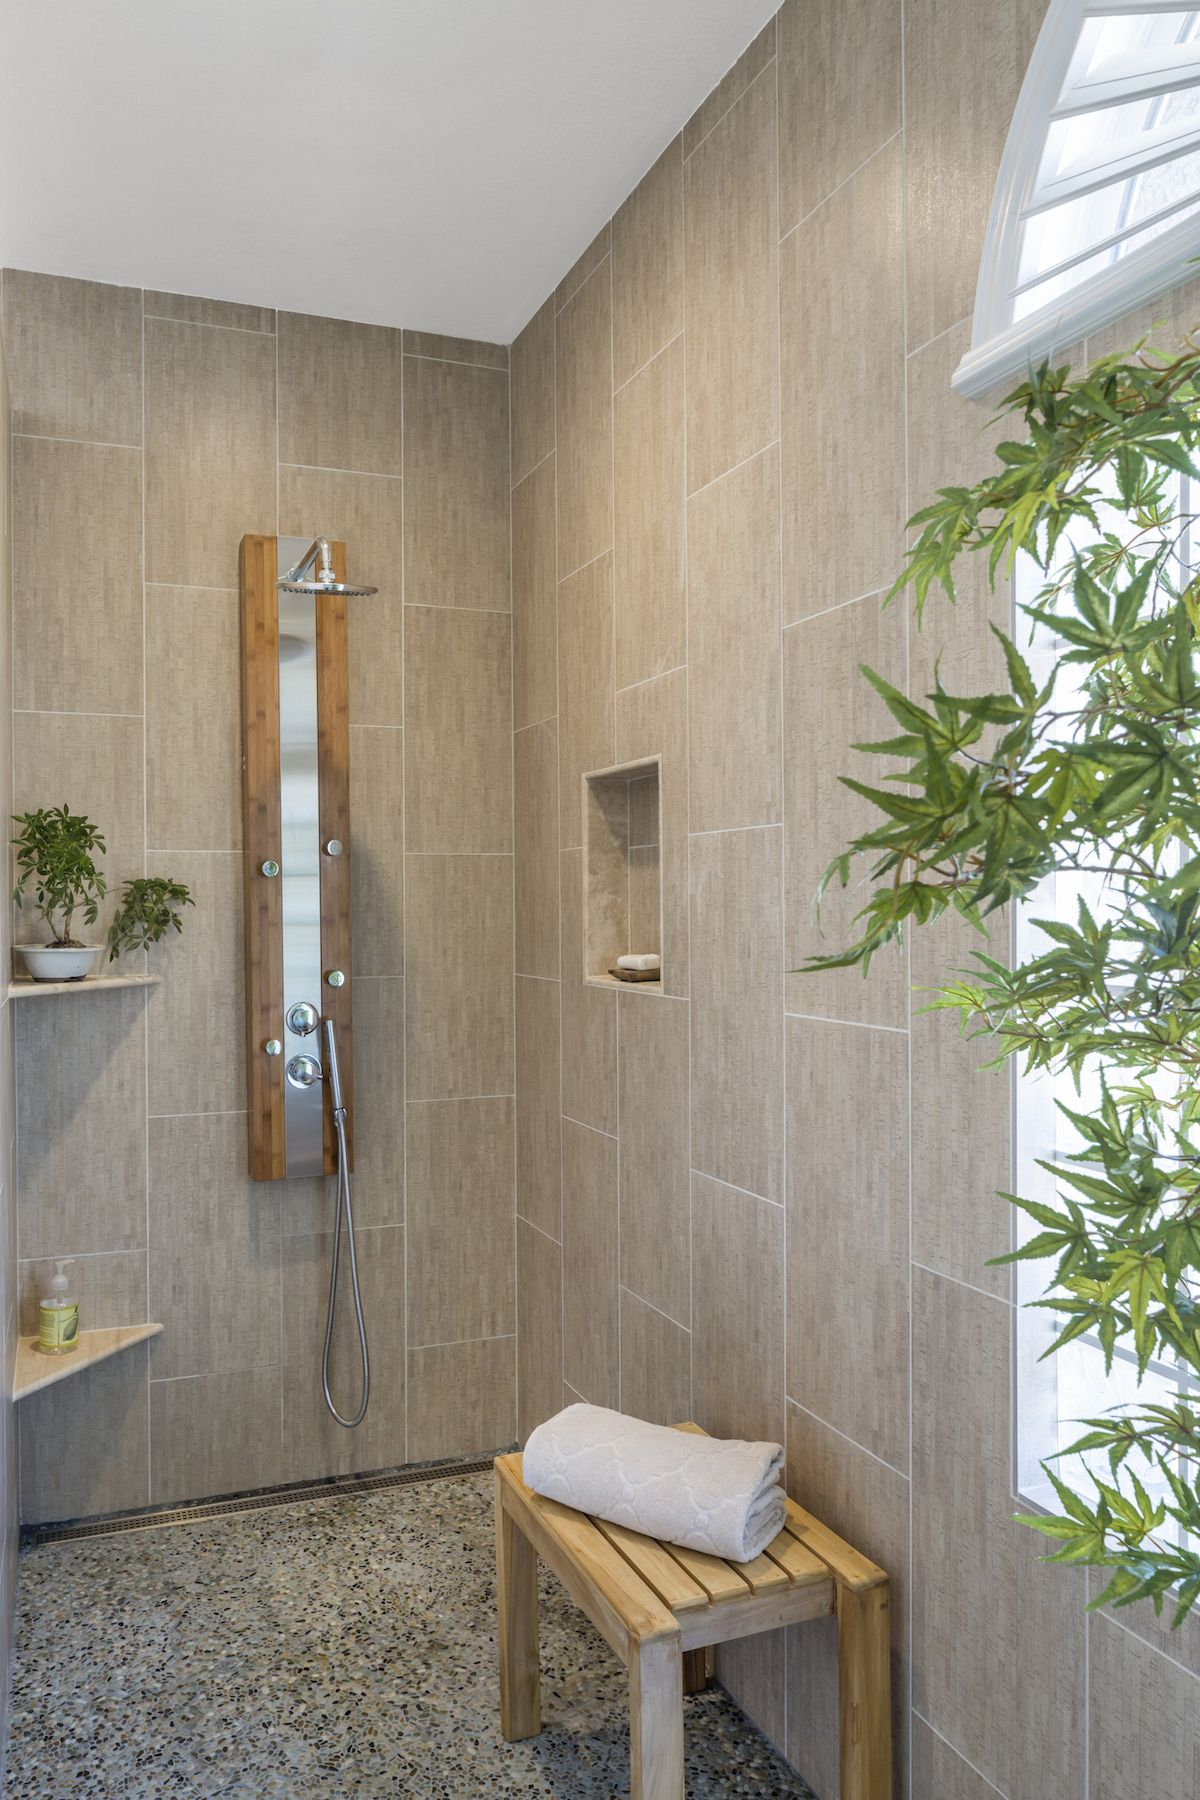 Modern Zen Bath Remodel Bamboo Print Tile Pebble Floor Tiles Bamboo Shower Panel Linear Drain Walk In Tub To Shower Remodel Shower Panels Walk In Shower